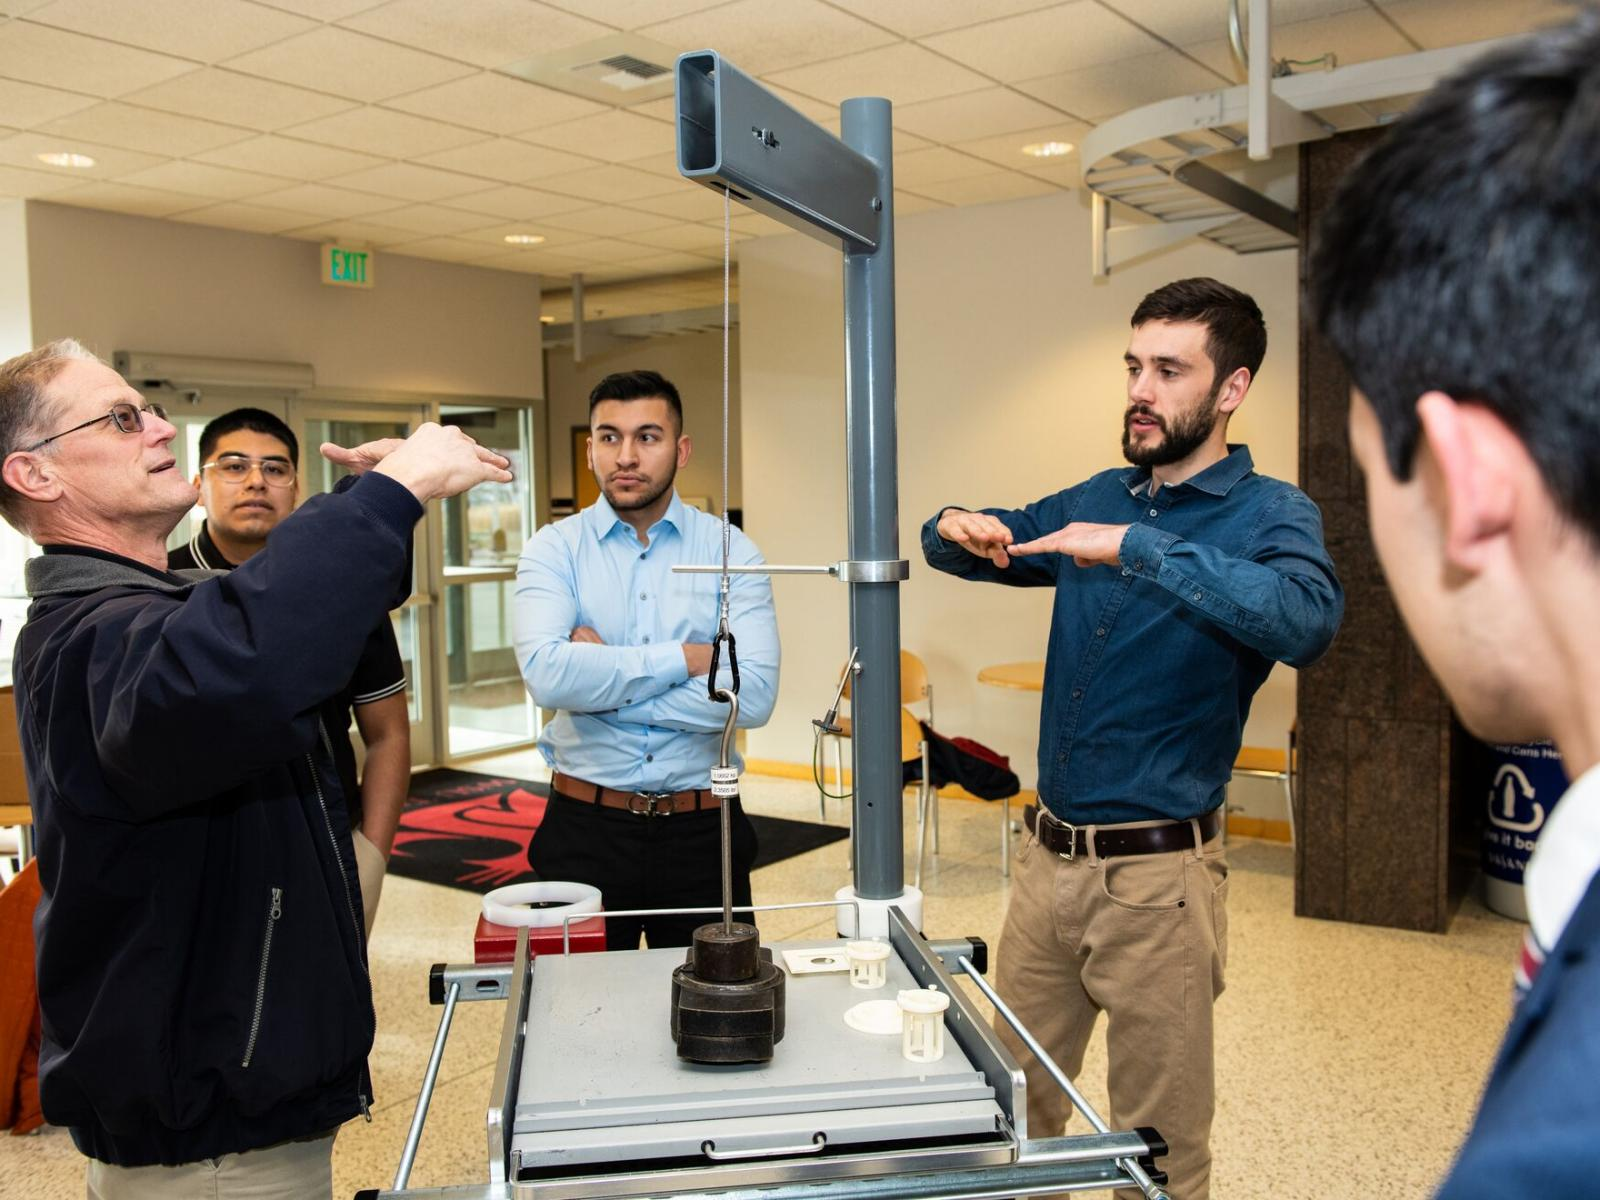 WSU engineering students demonstrate their detector lifting device.